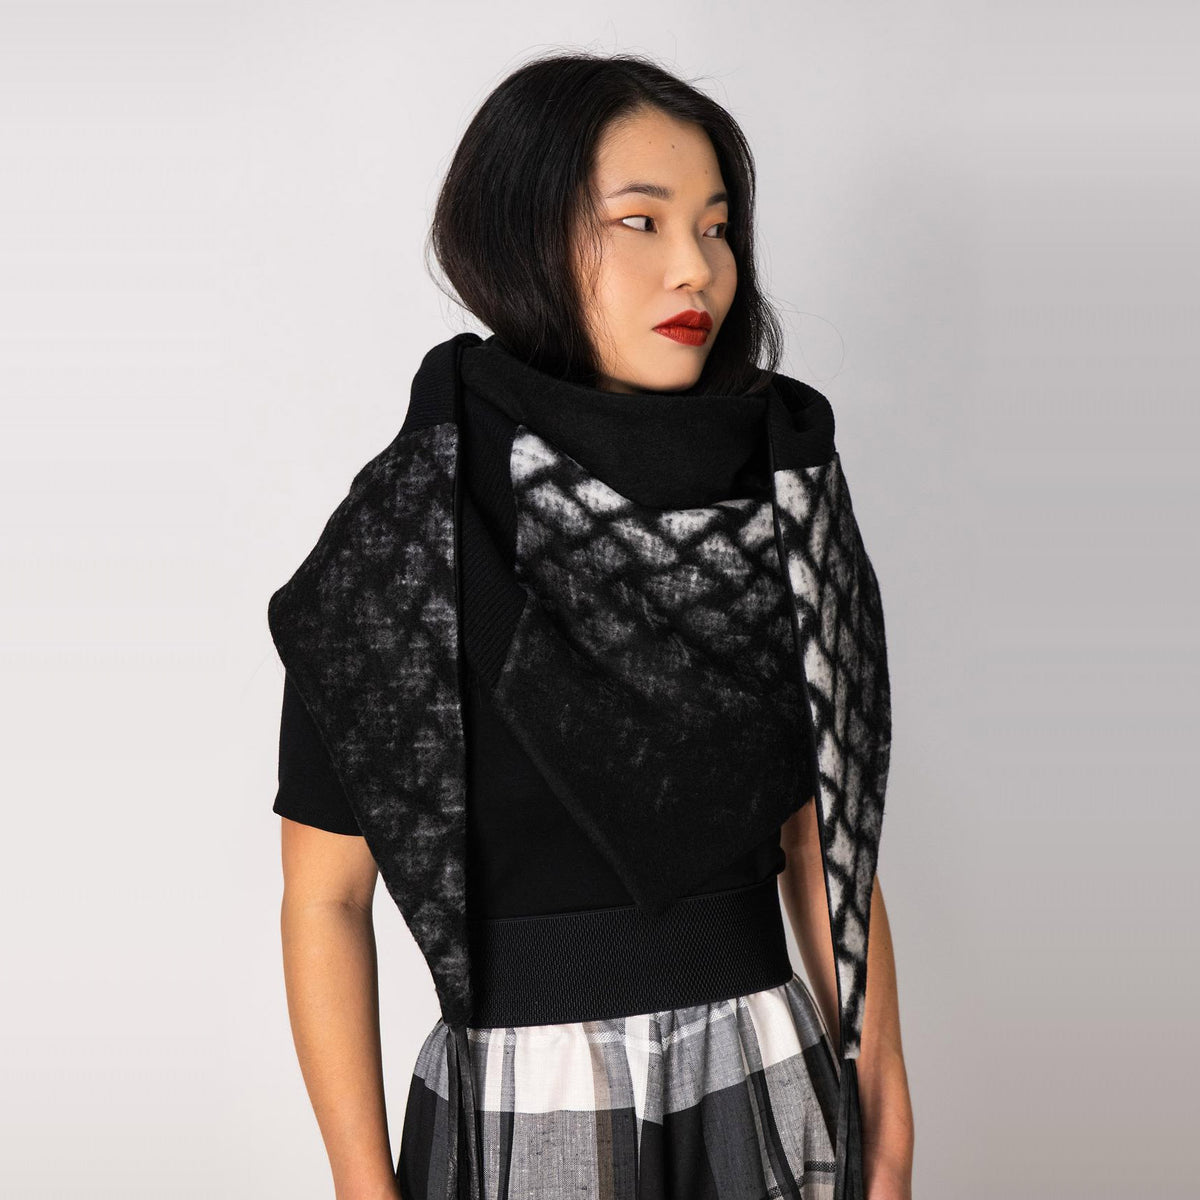 Model Wearing a Indiana Scarf / Shawl - Black & White Diamond - Sold by Chic & Basta